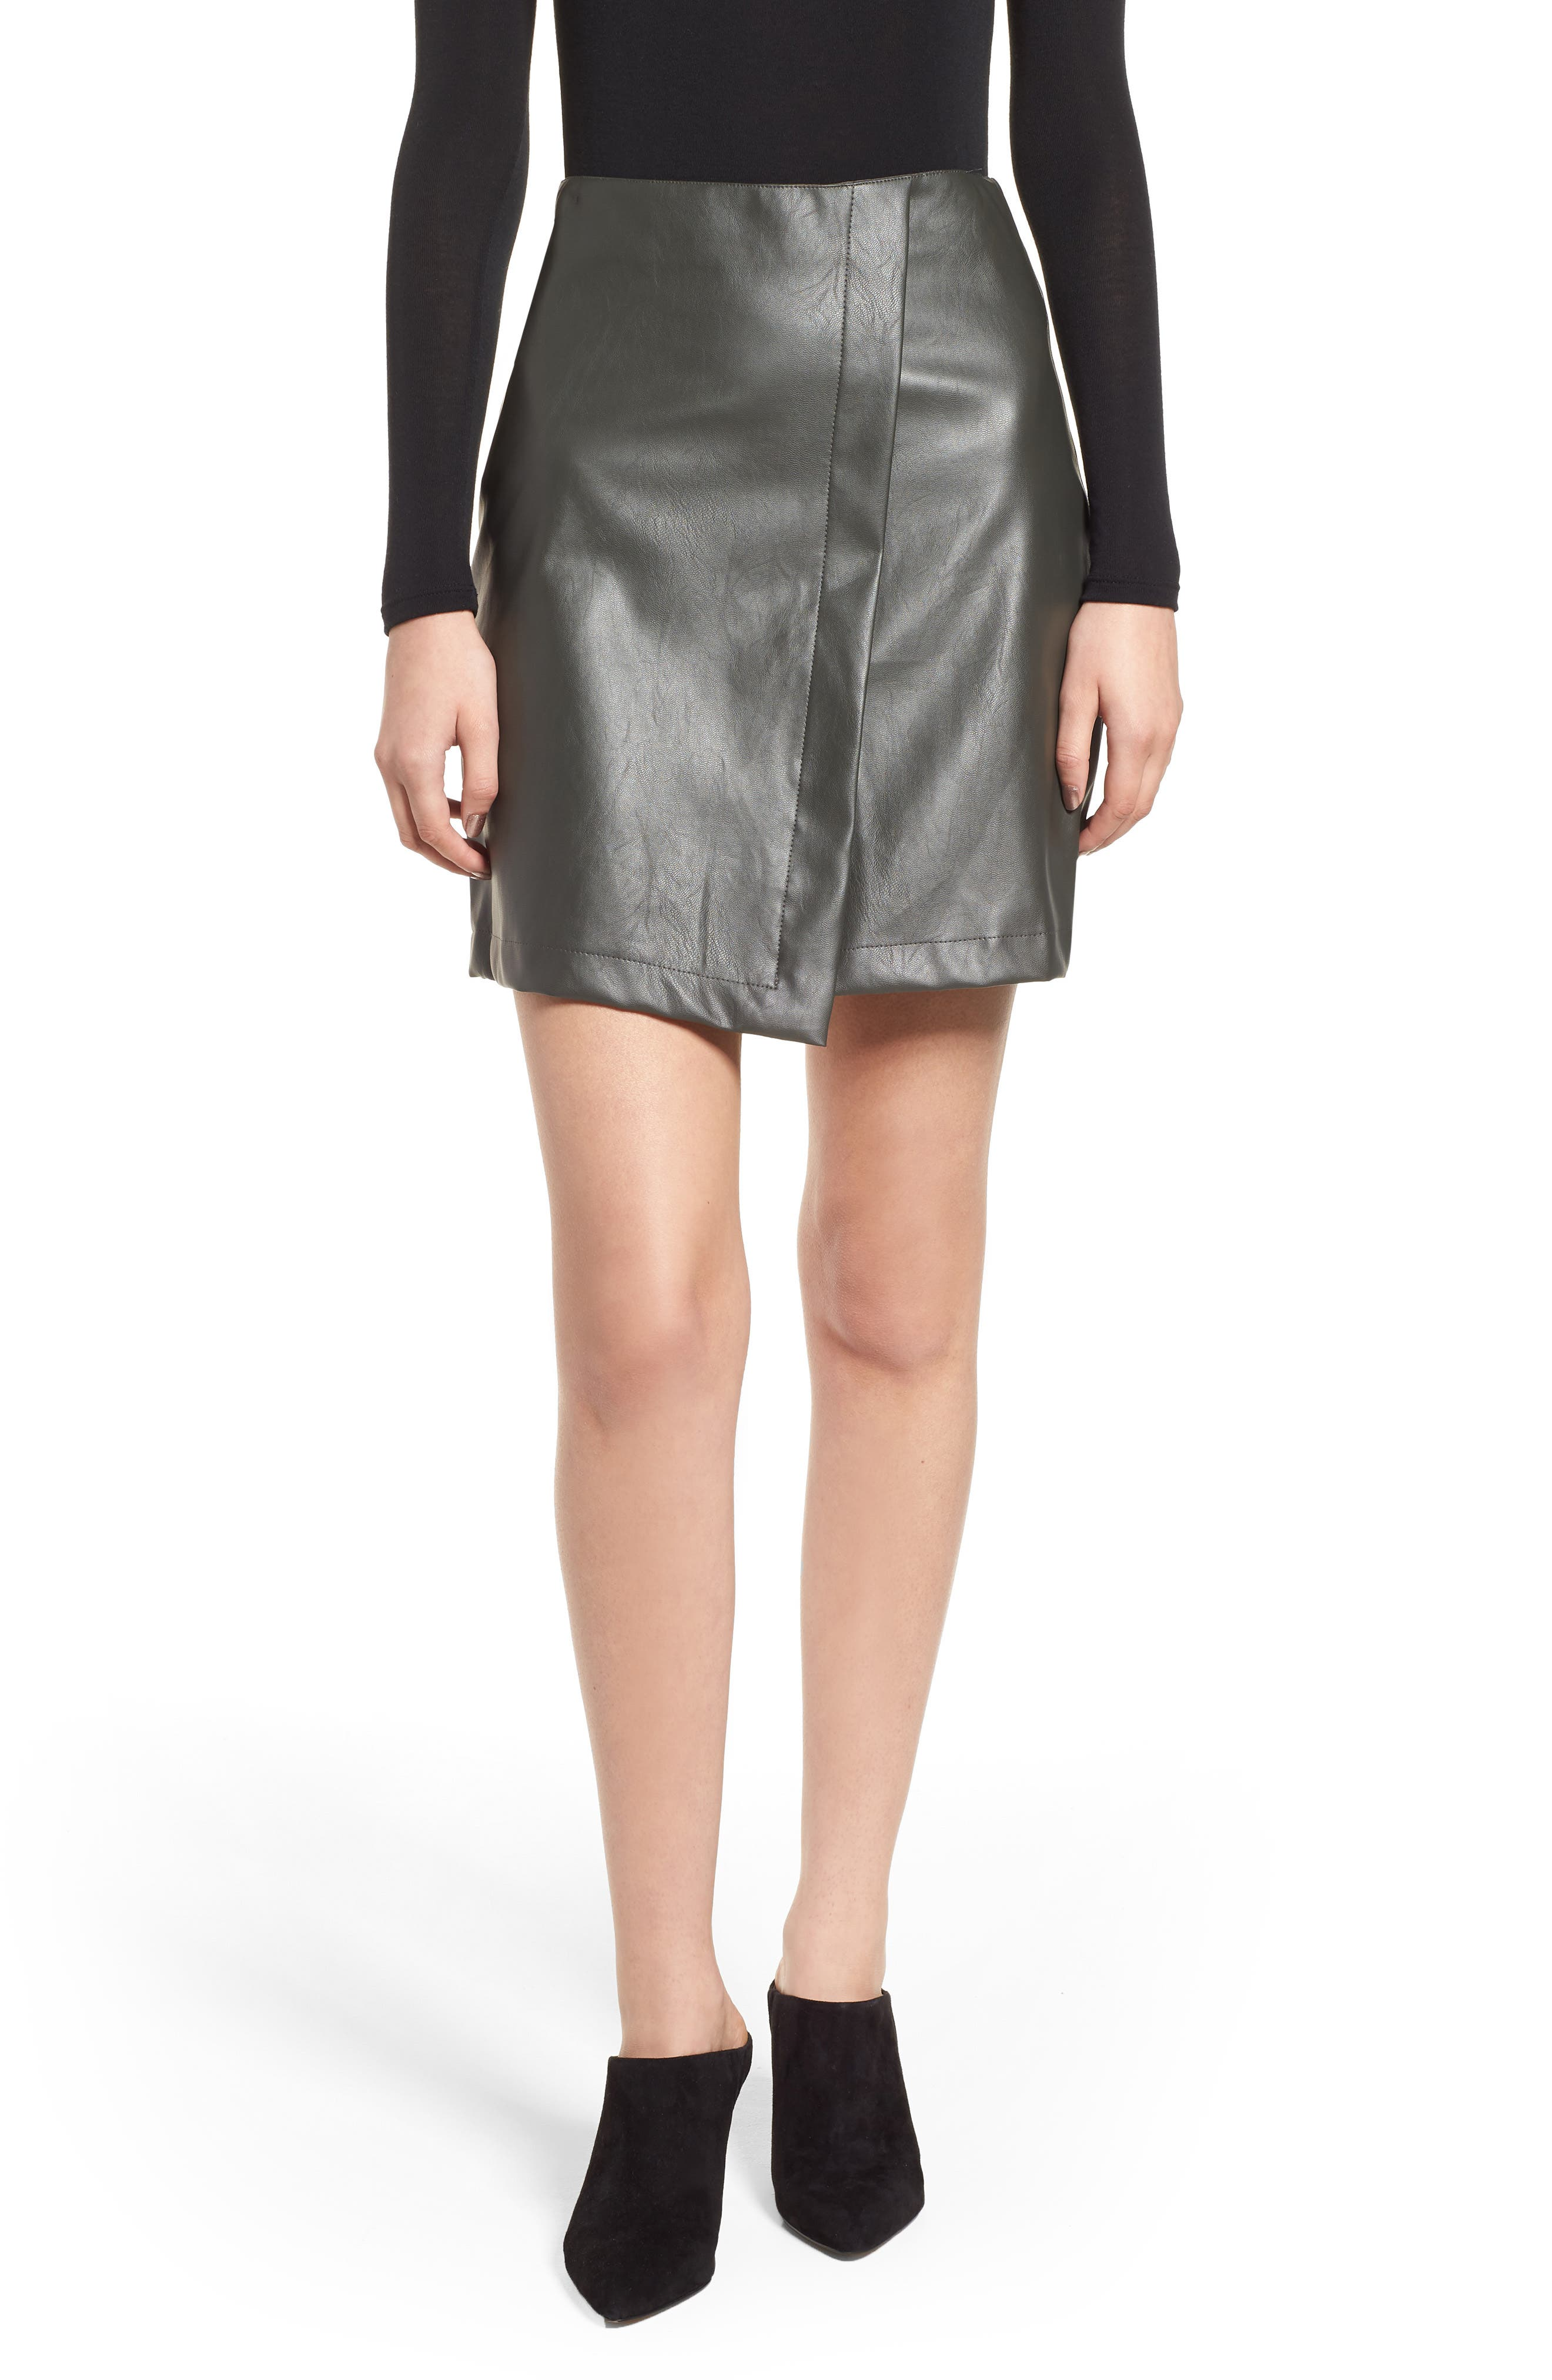 Bishop + Young A-Line Faux Leather Miniskirt,                             Main thumbnail 1, color,                             333